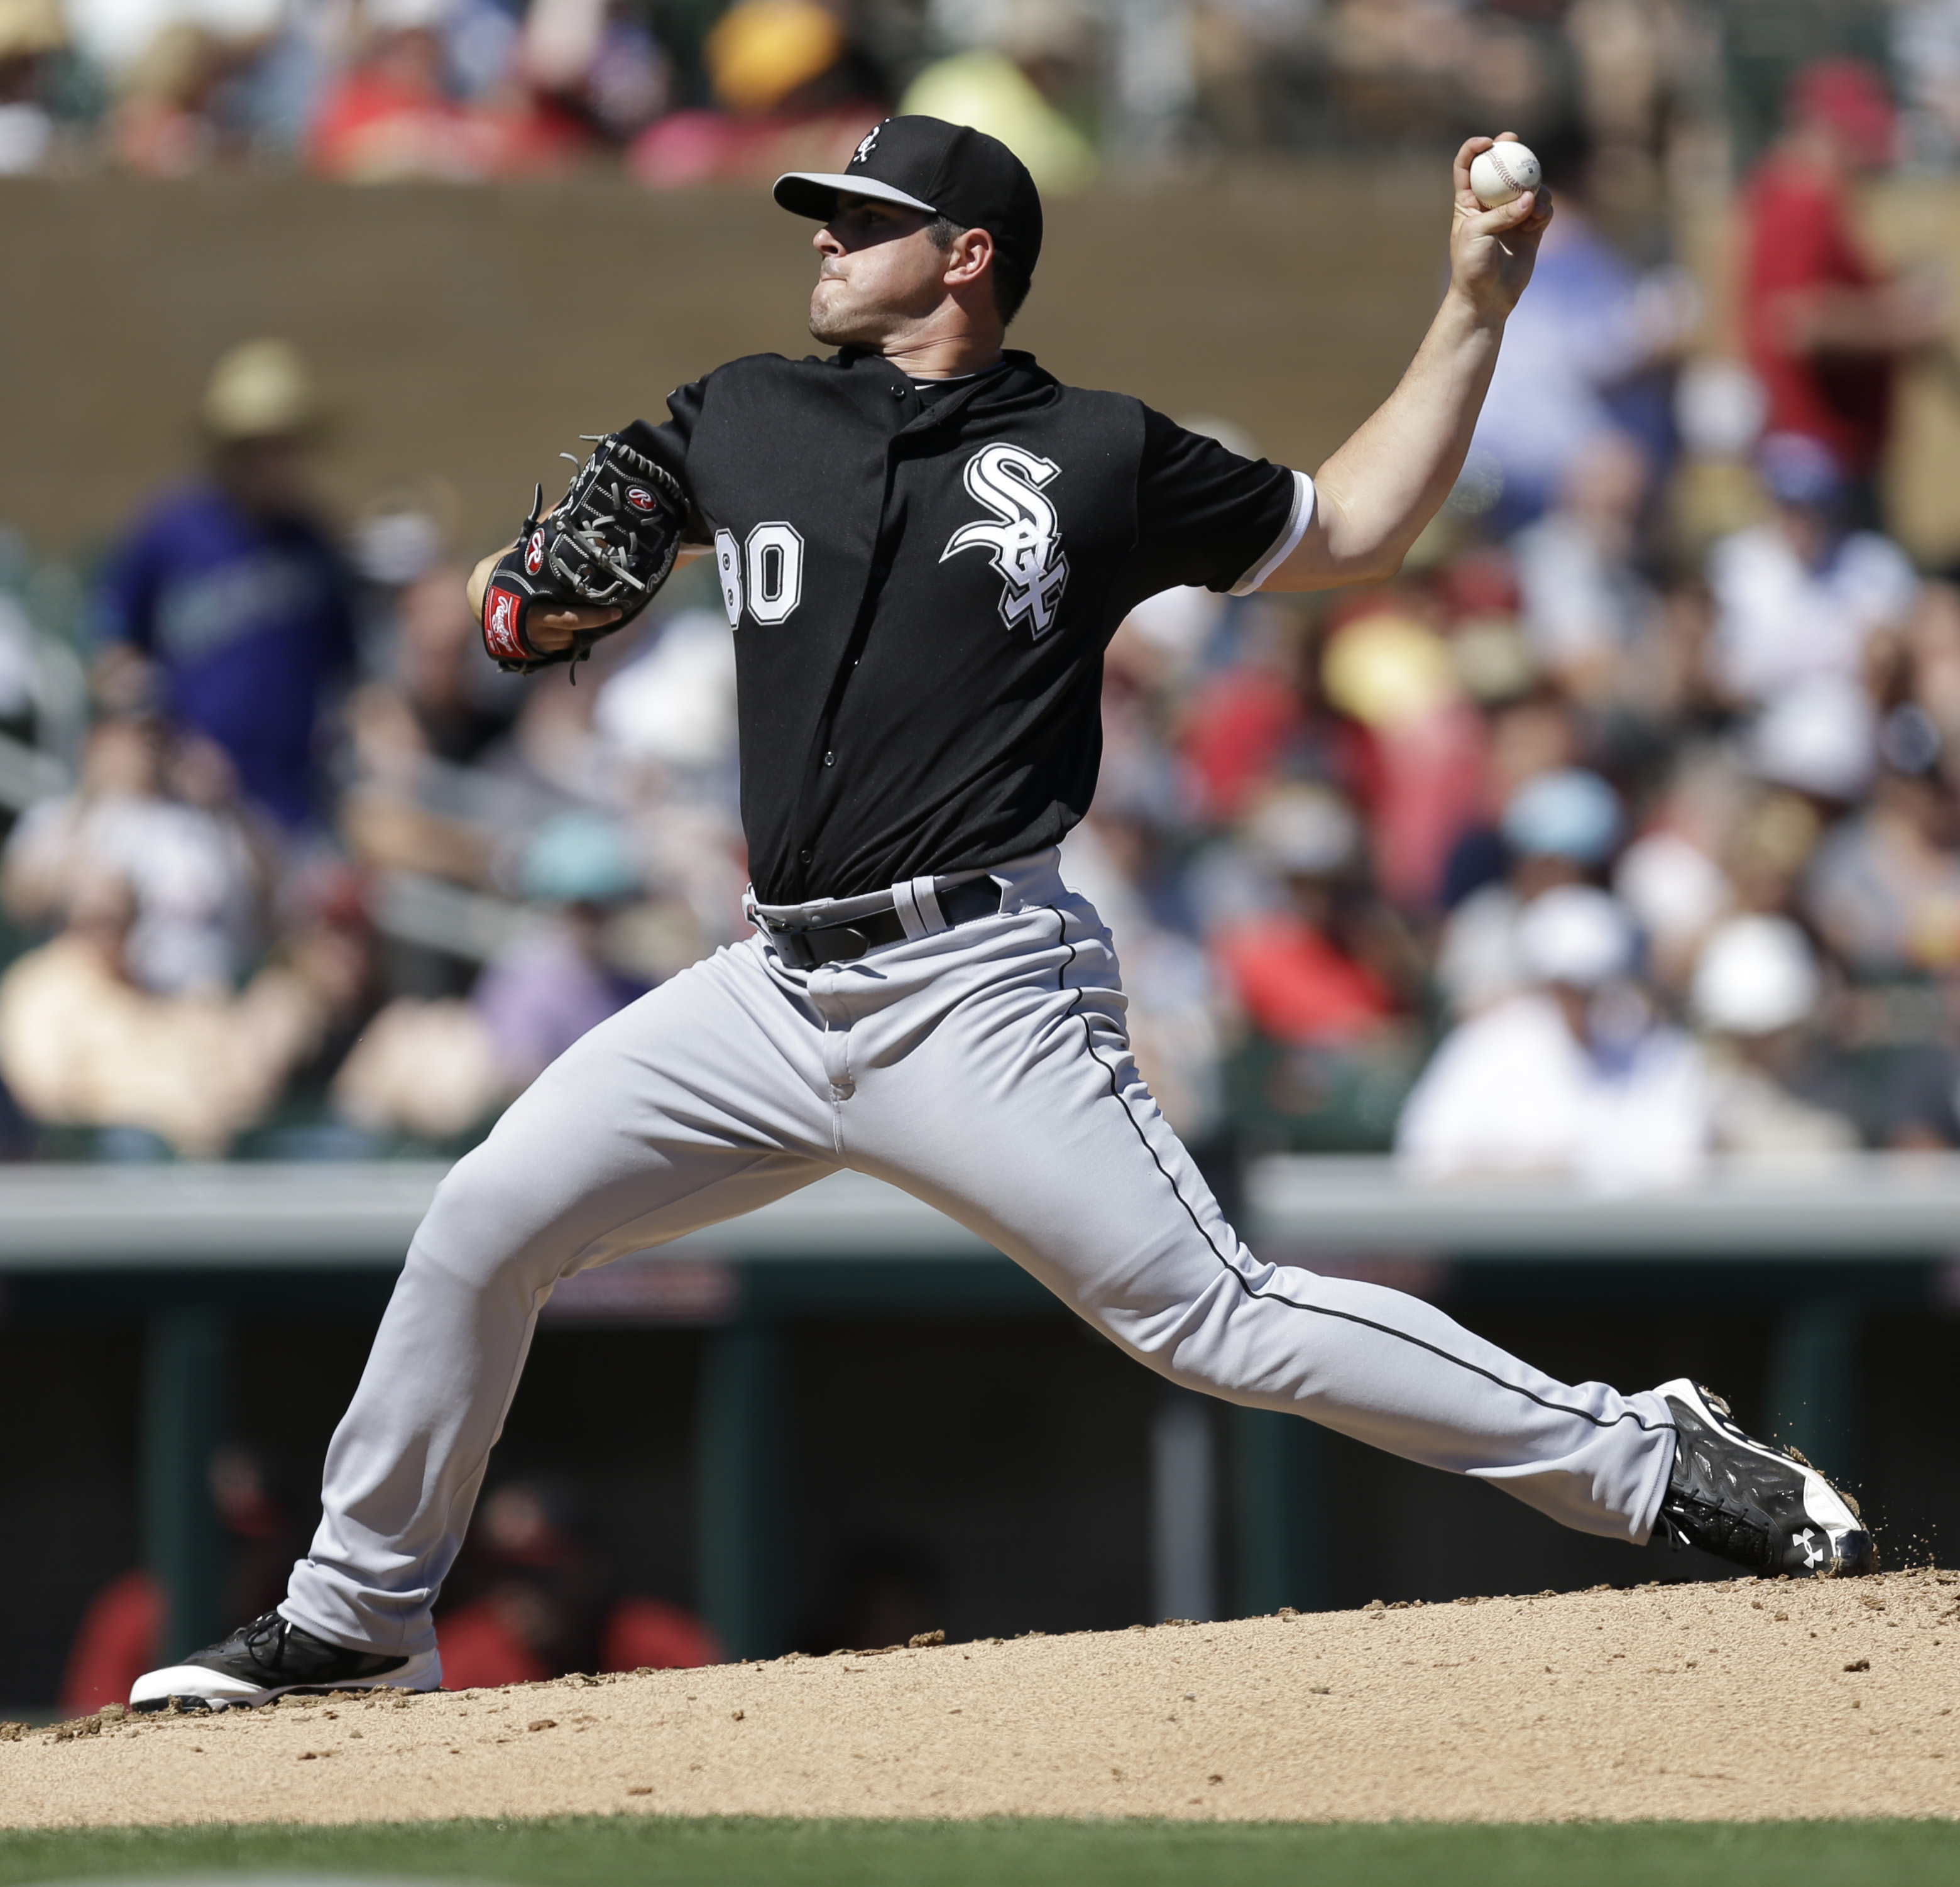 Chicago White Sox pitcher Carlos Rodon works against the Arizona Diamondbacks in the first inning of a spring training exhibition baseball game Monday, March 16, 2015, in Scottsdale, Ariz. (AP Photo/Ben Margot)